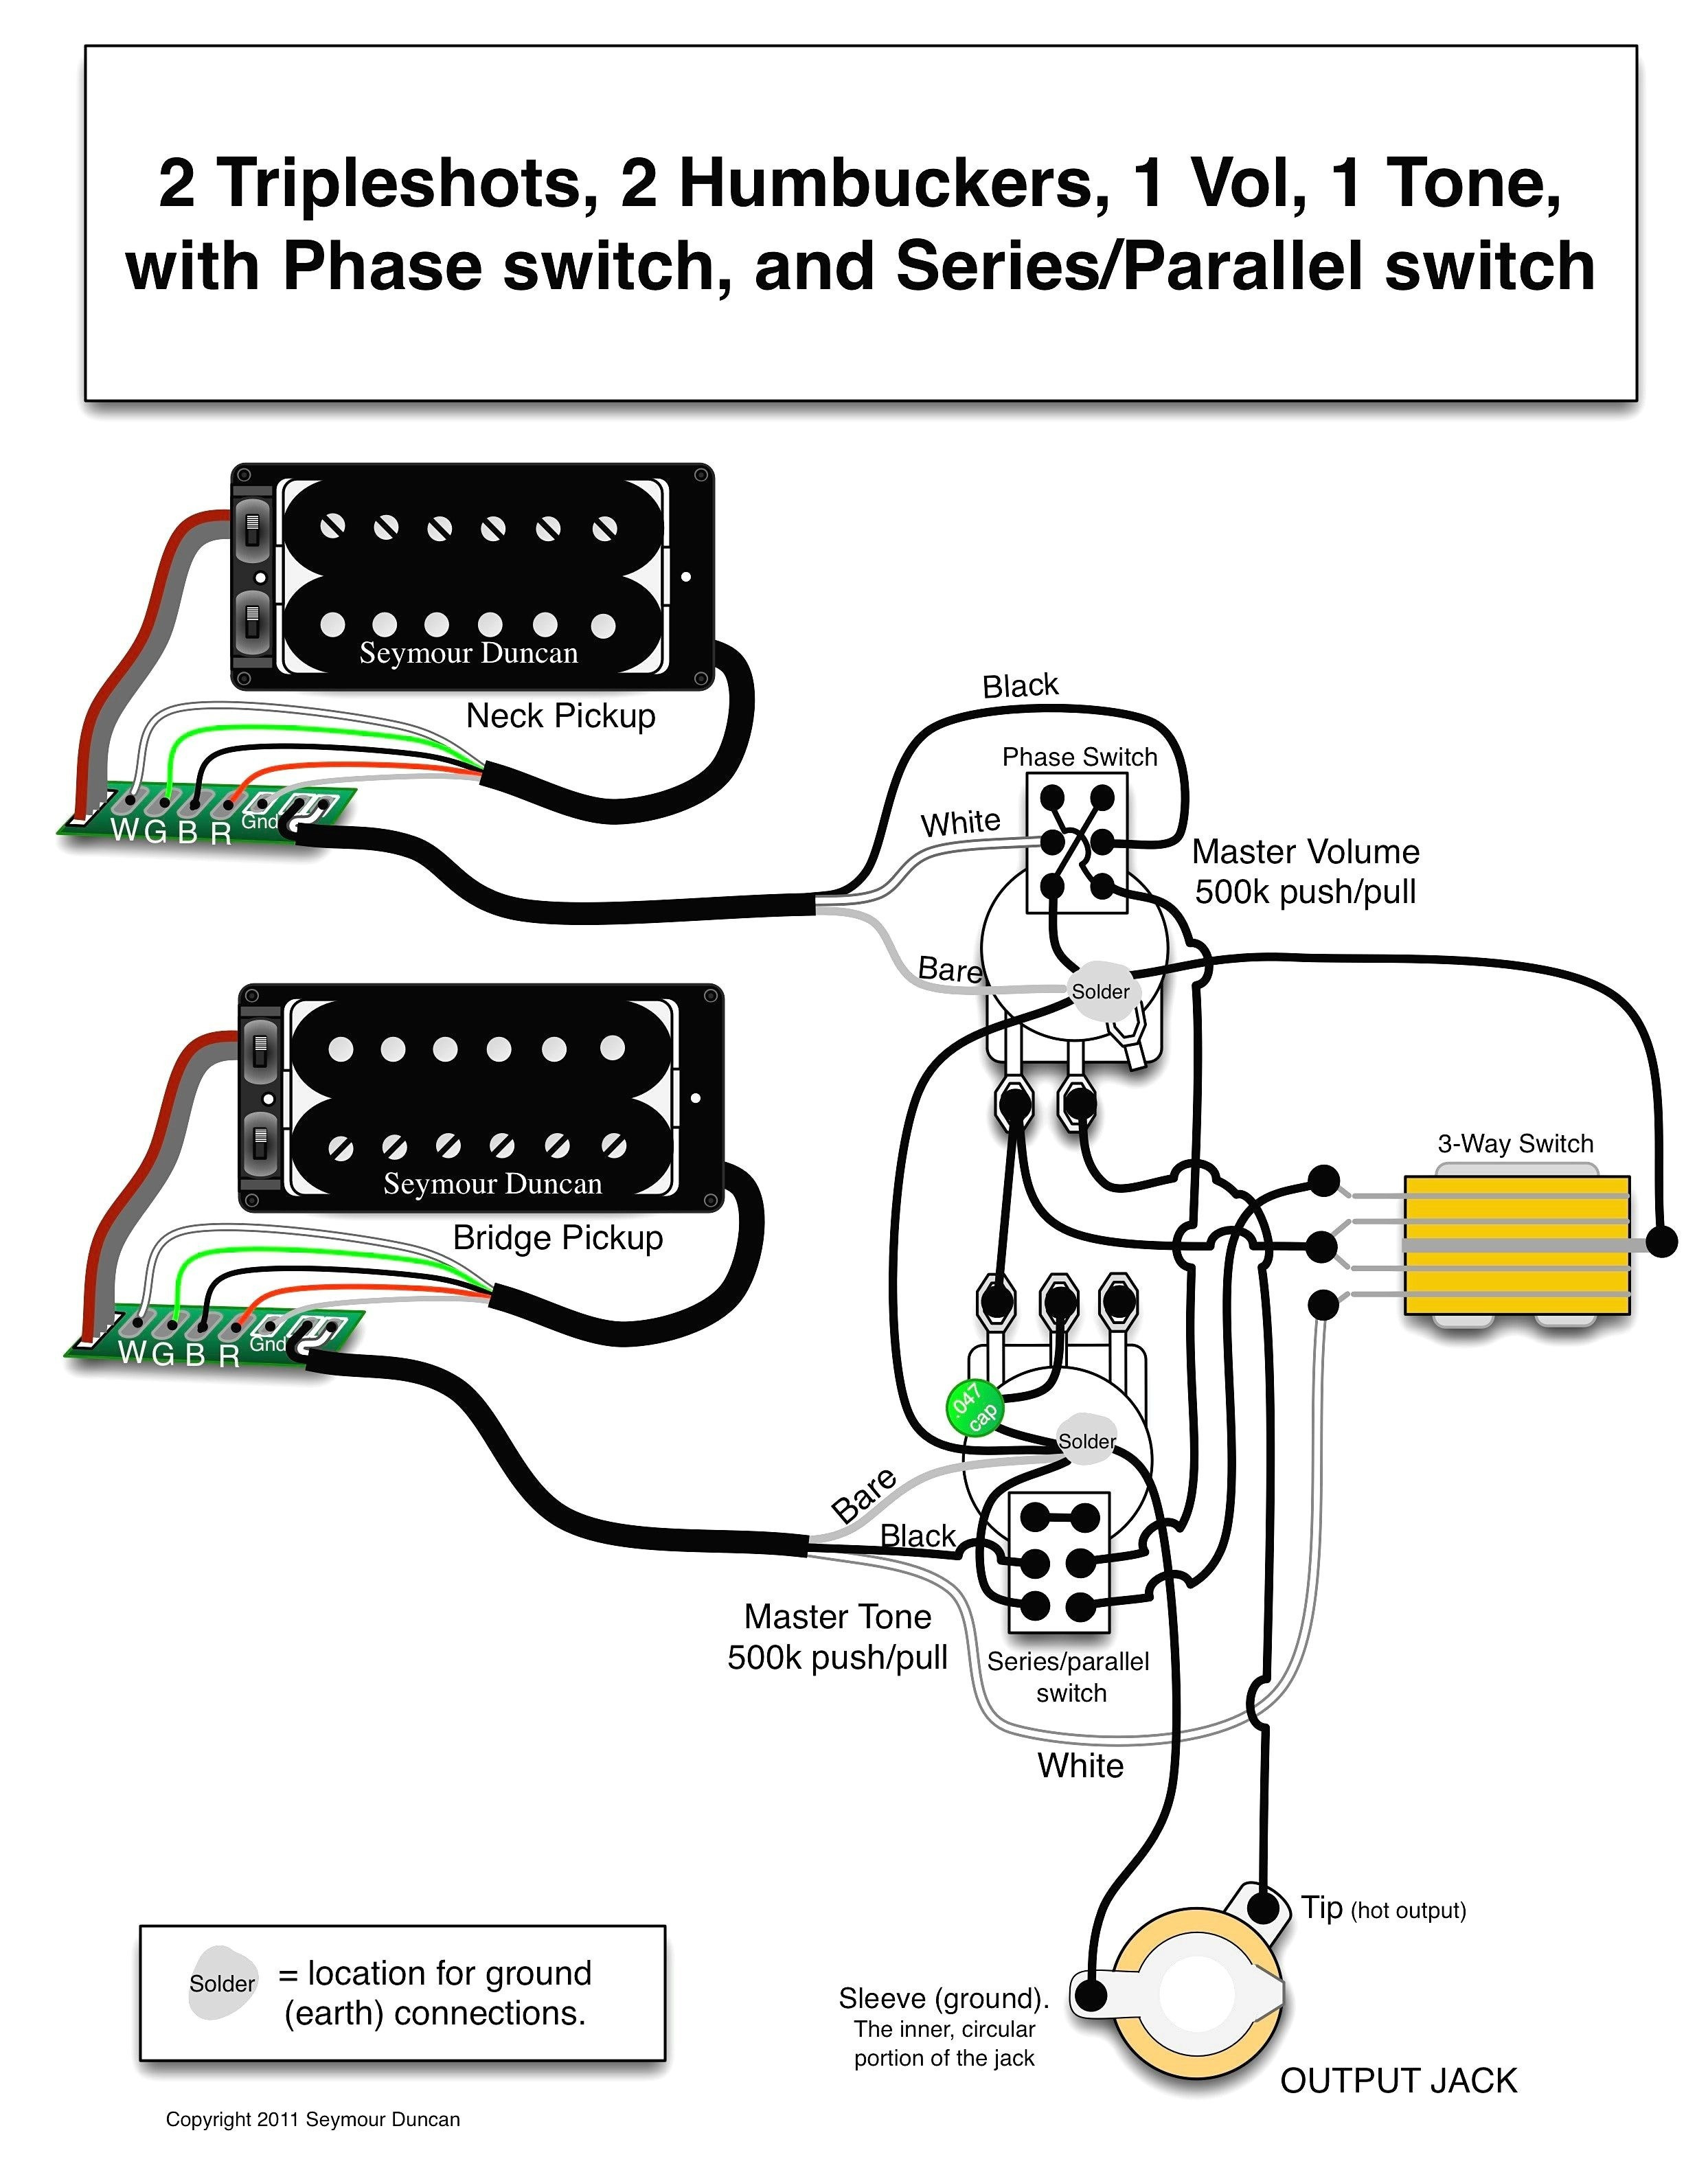 lp jr wiring diagram Download-Gibson Sg Junior Wiring Diagram New Wiring Diagram For Les Paul Junior New Gibson Les Paul Wiring 20-i